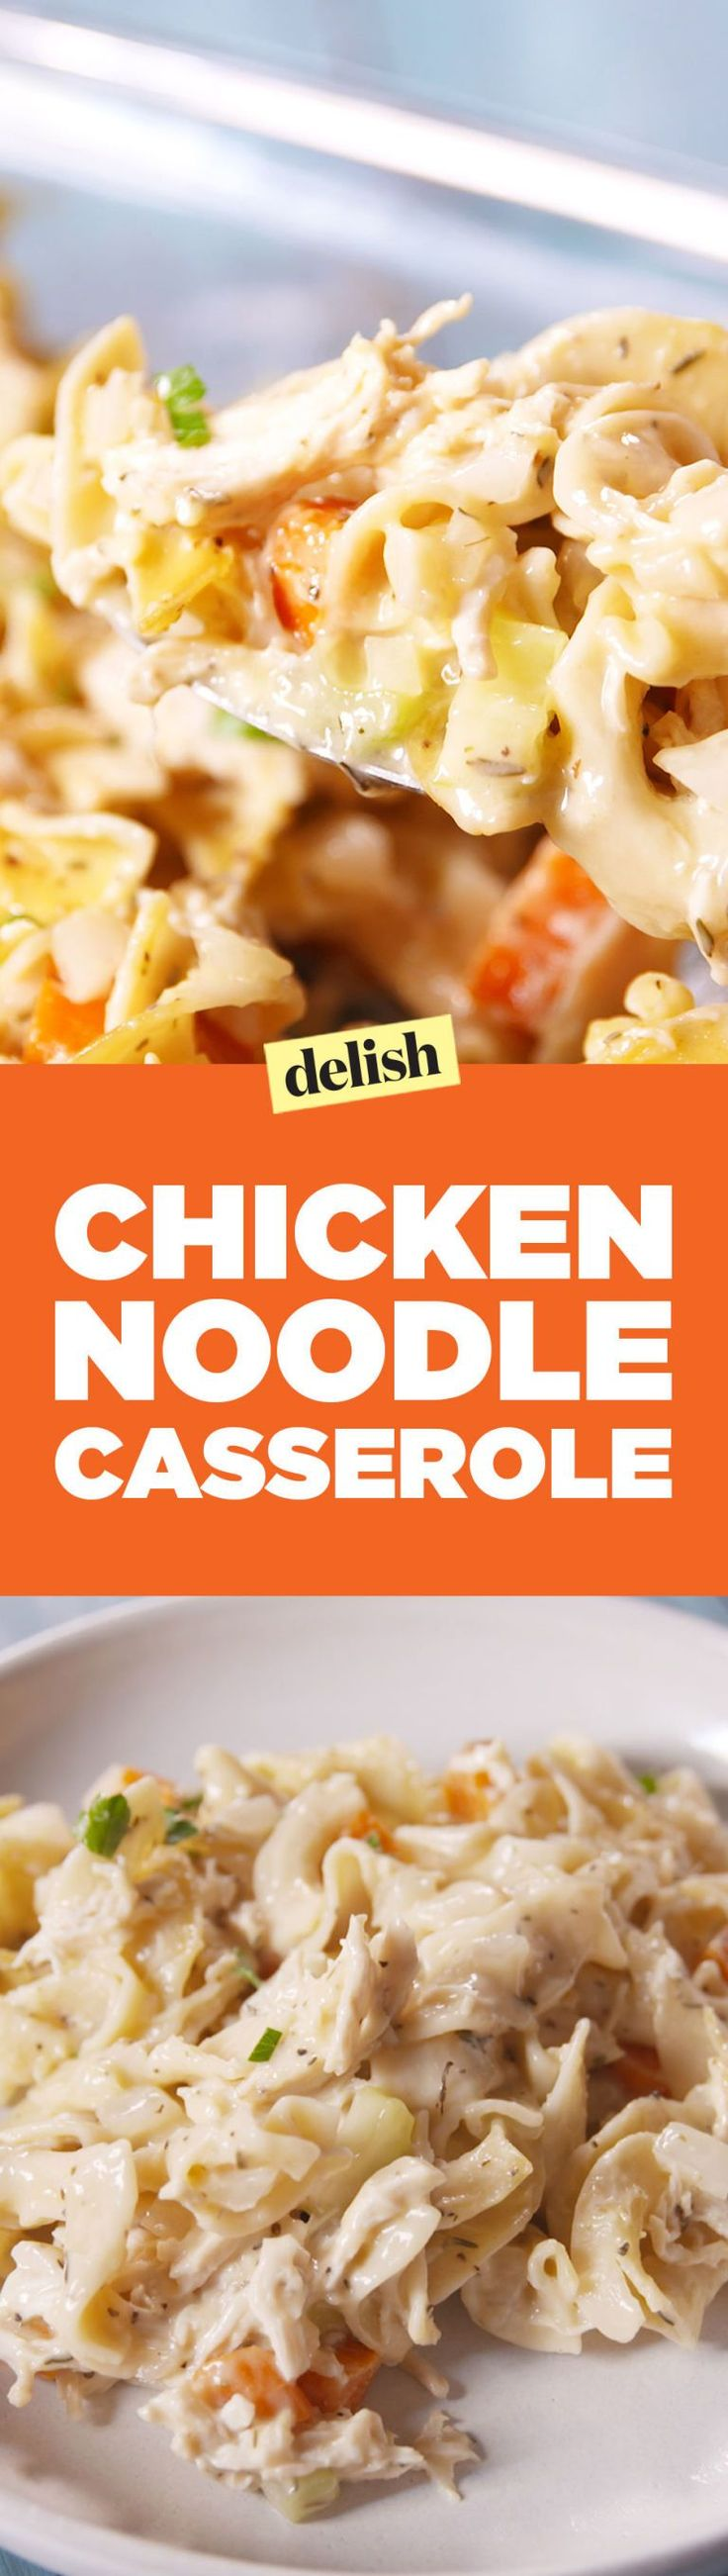 We've Taken The Best Part of Chicken Noodle Soup And Made It A Casserole